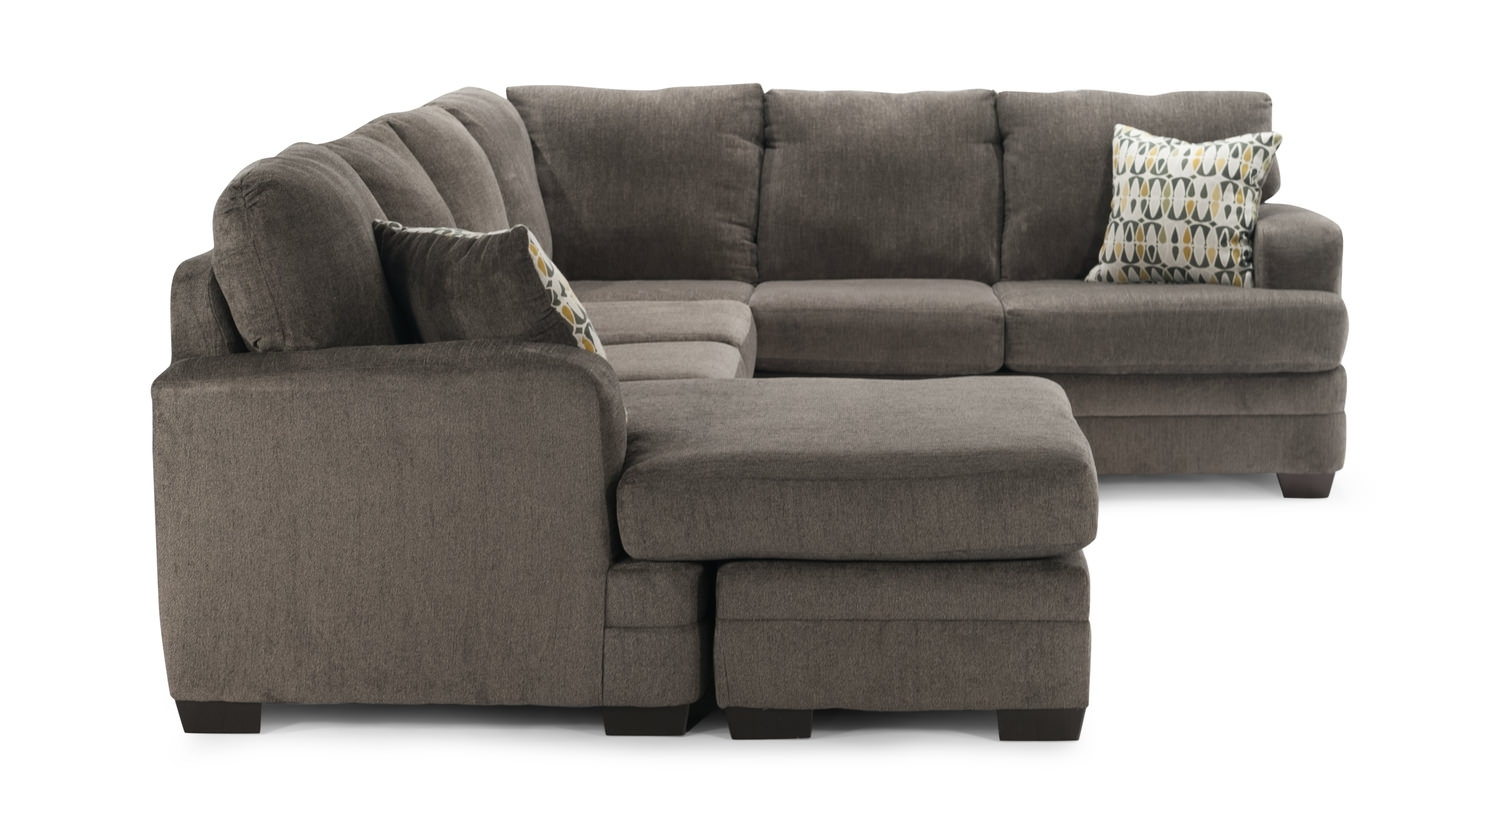 Galena 2 Piece Sectional | Dock86 Within Dock 86 Sectional Sofas (Image 5 of 10)